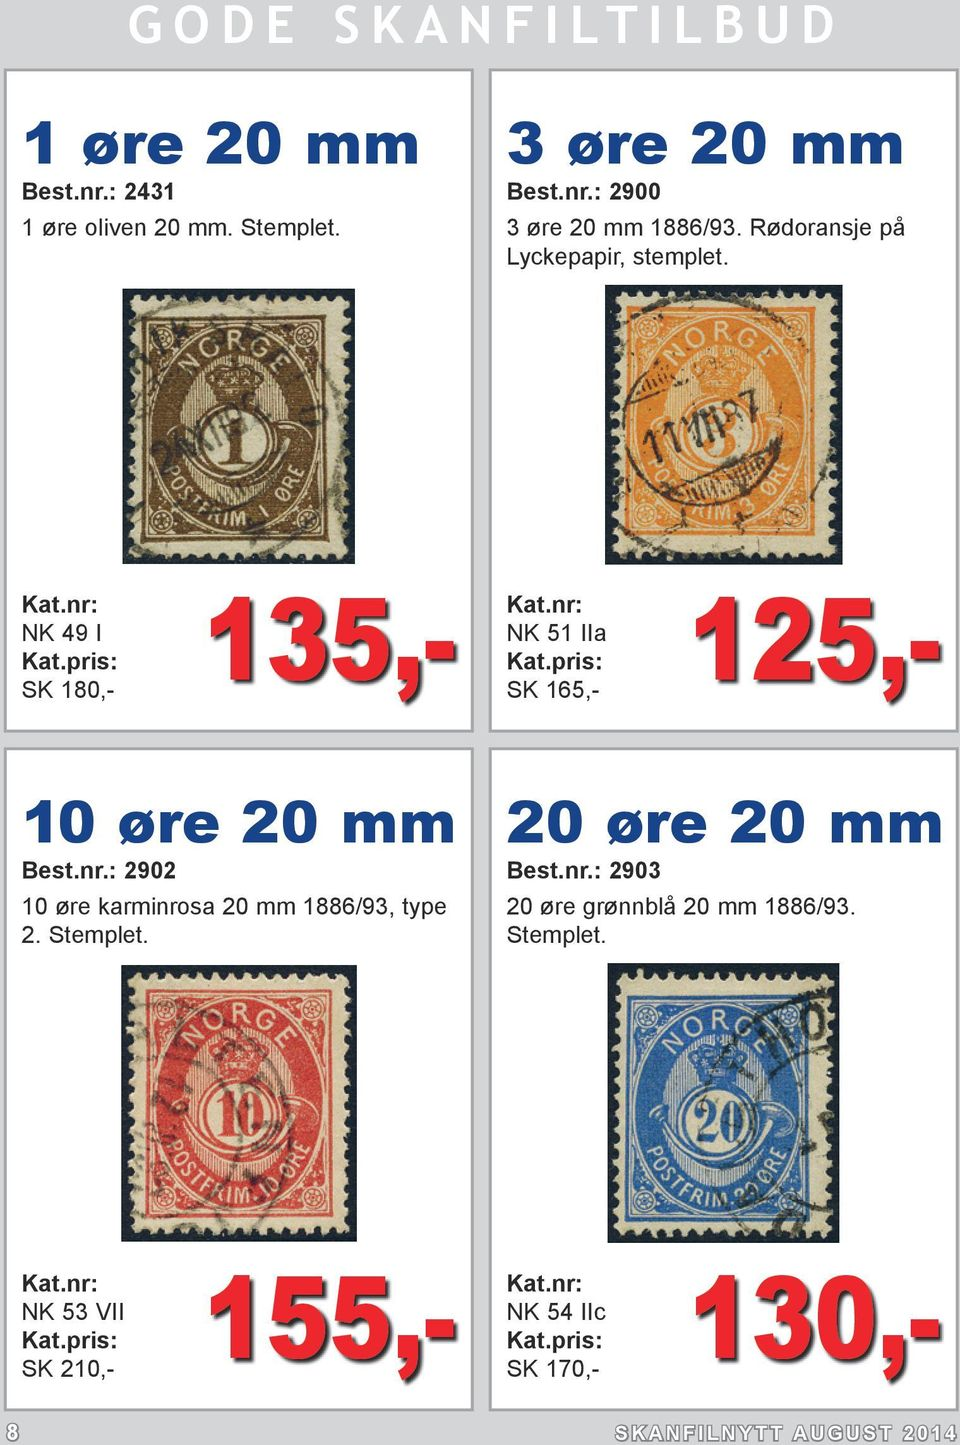 nr.: 2902 10 øre karminrosa 20 mm 1886/93, type 2. Stemplet. 20 øre 20 mm Best.nr.: 2903 20 øre grønnblå 20 mm 1886/93.